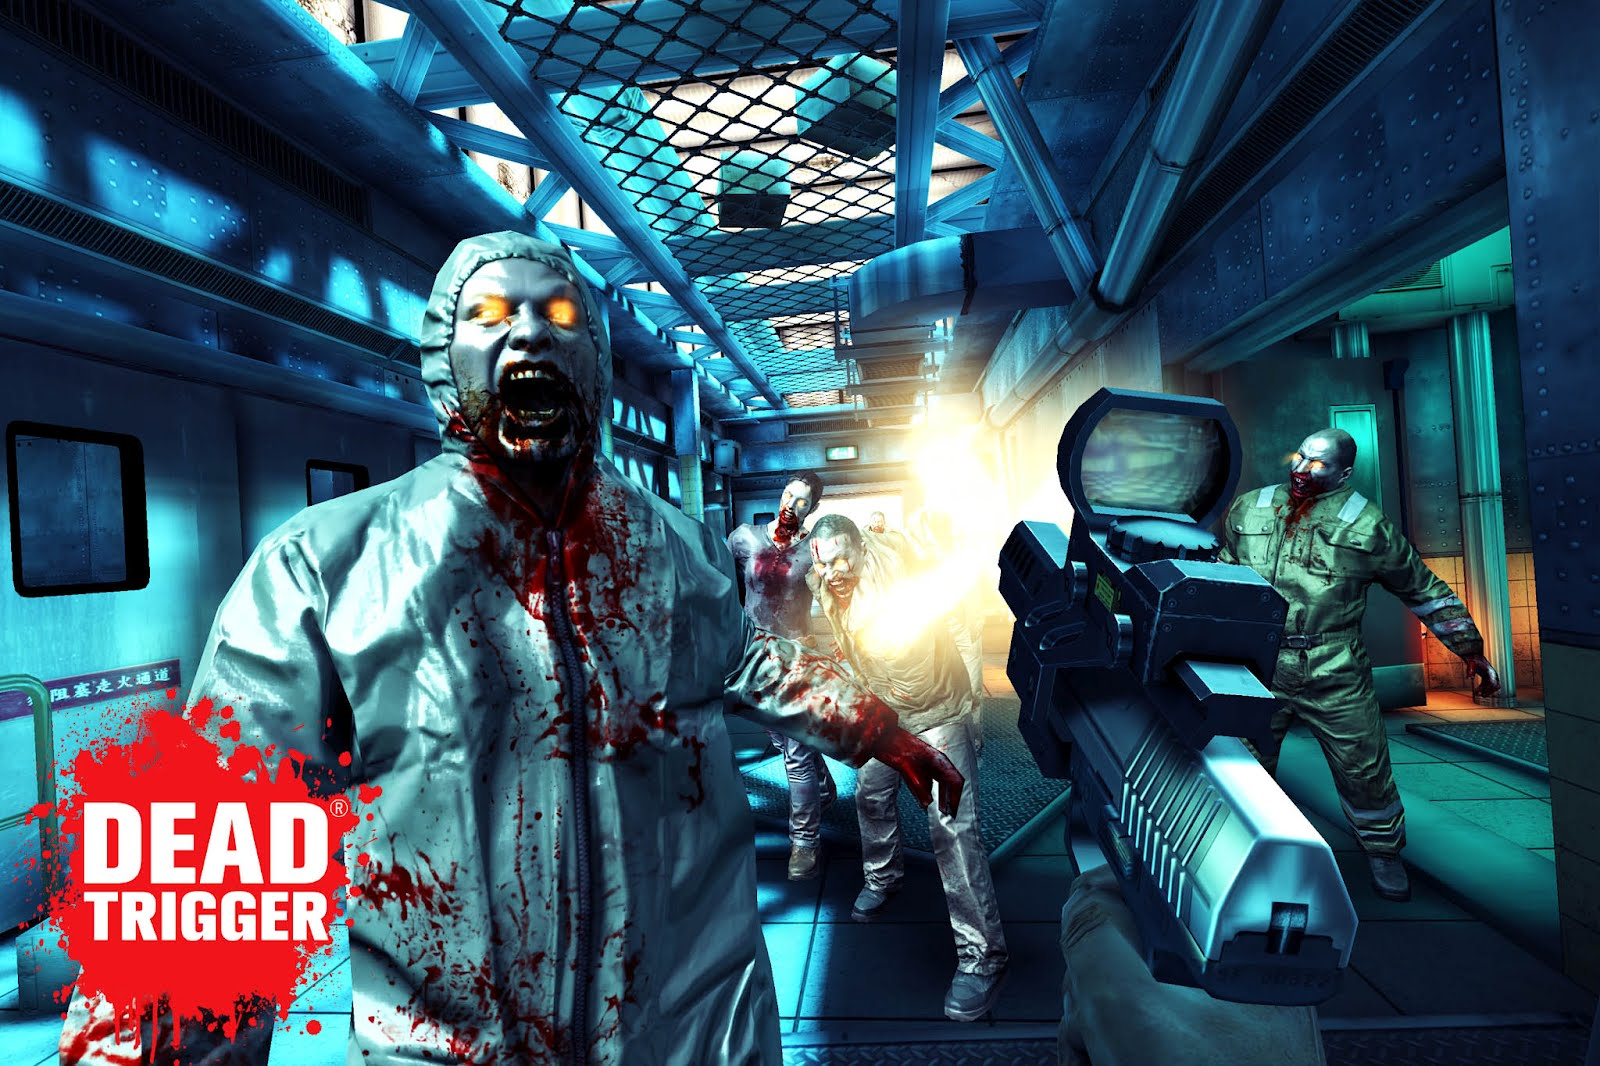 CALMmobile: DEAD TRIGGER // from Madfinger Games